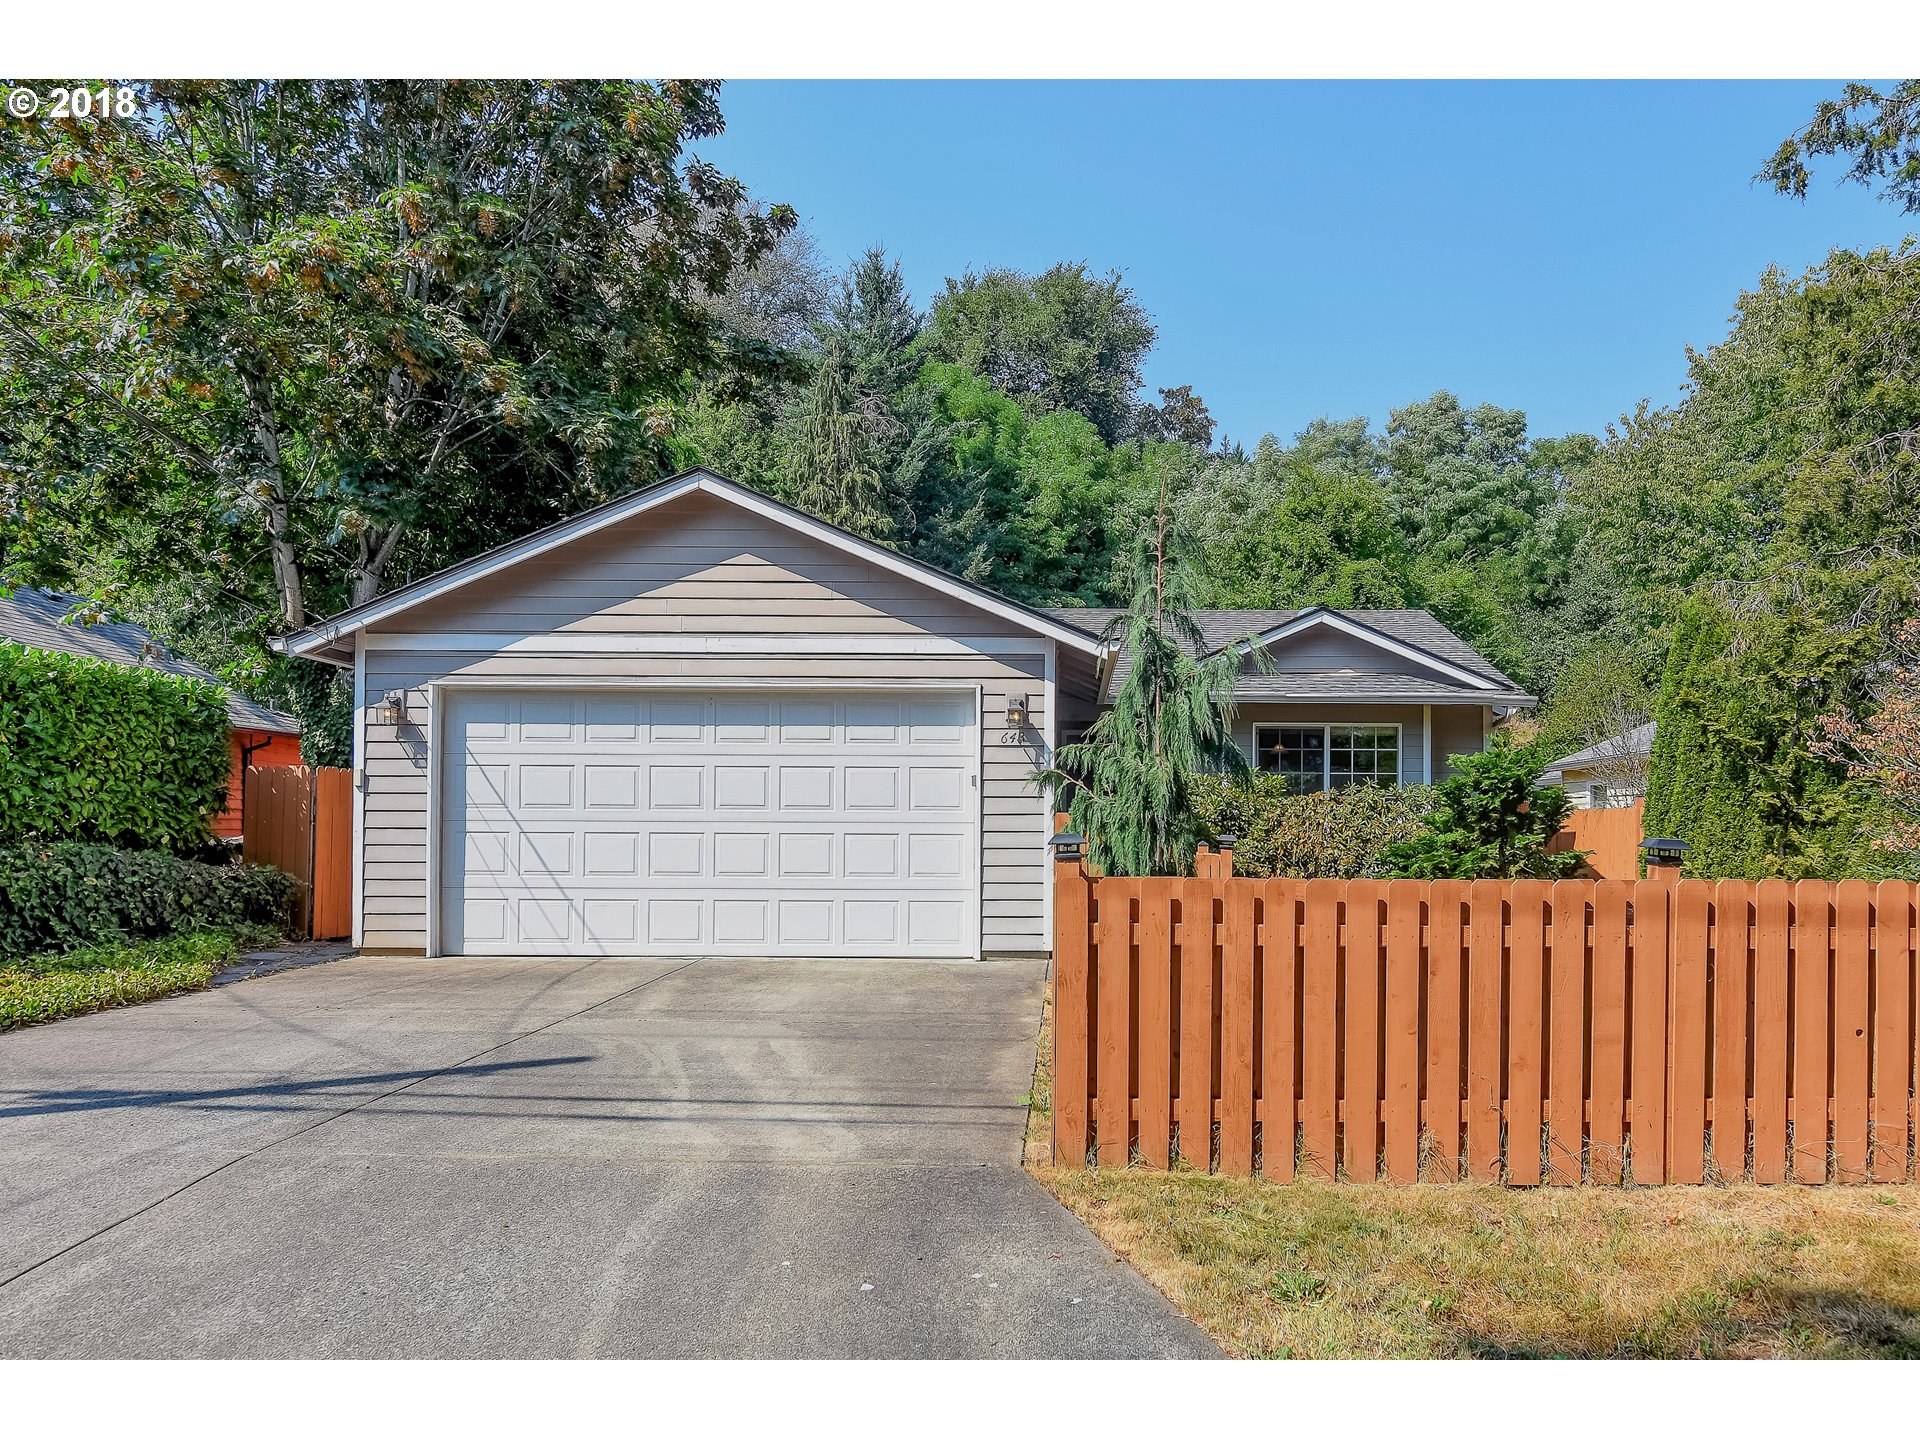 643 NW 10TH AVE Camas, WA 98607 - MLS #: 18666640